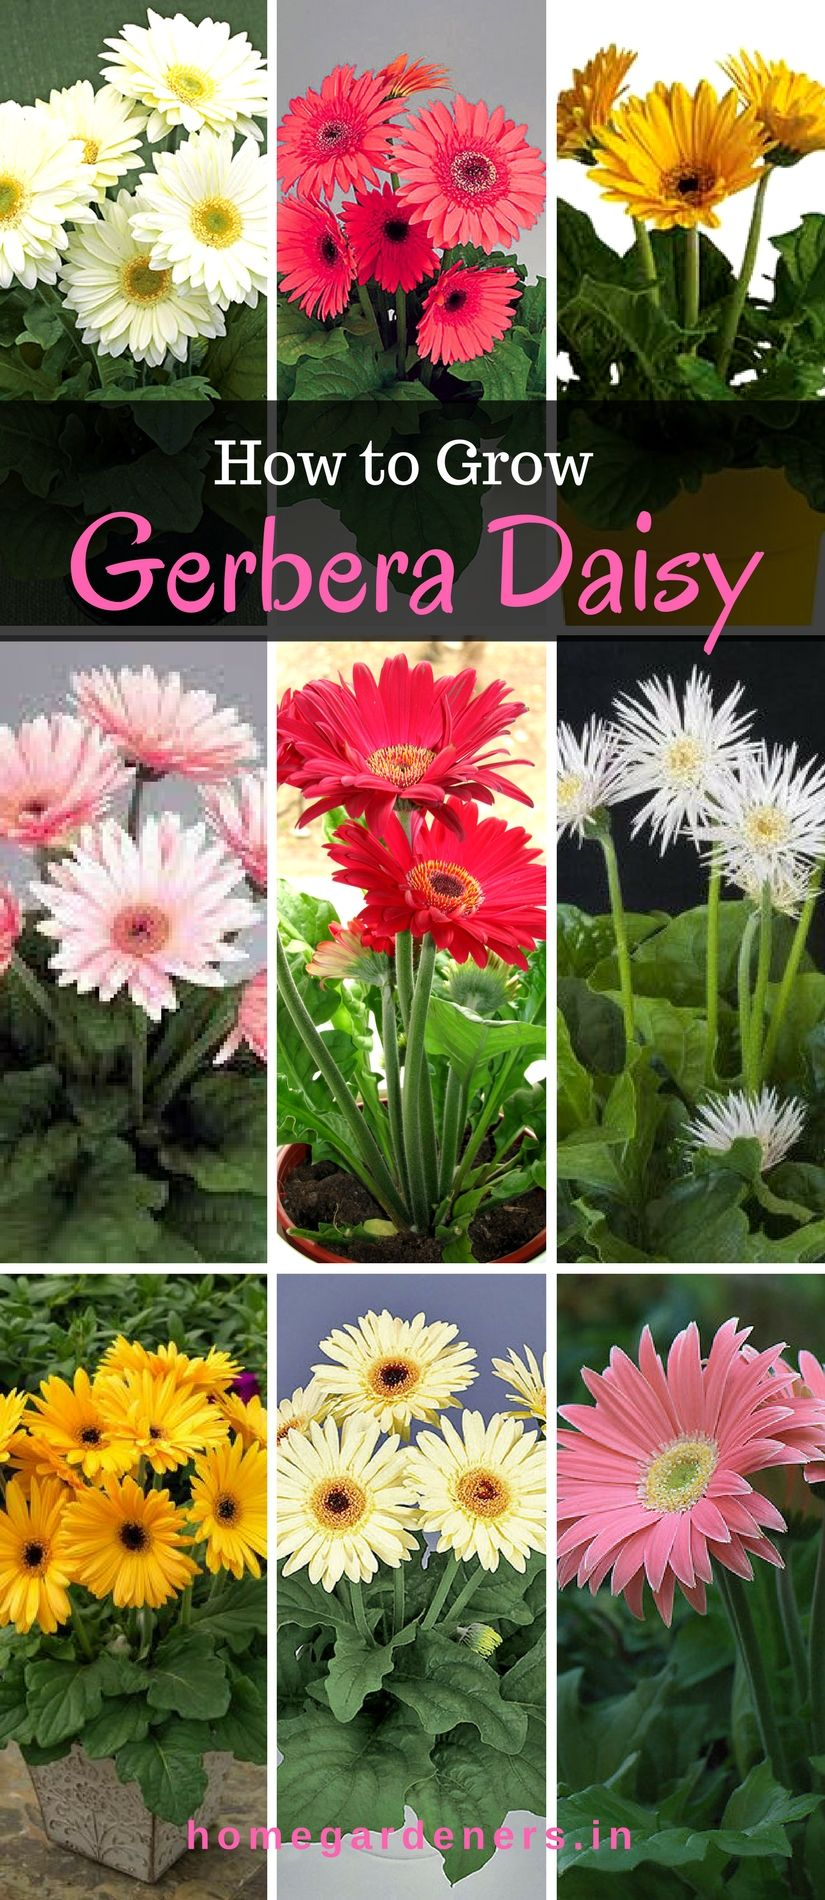 Gerbera Daisy Guide The Only Gerbera Daisy Resources You Will Ever Need Gerbera Plant Gerbera Daisy Care Gerbera Flower